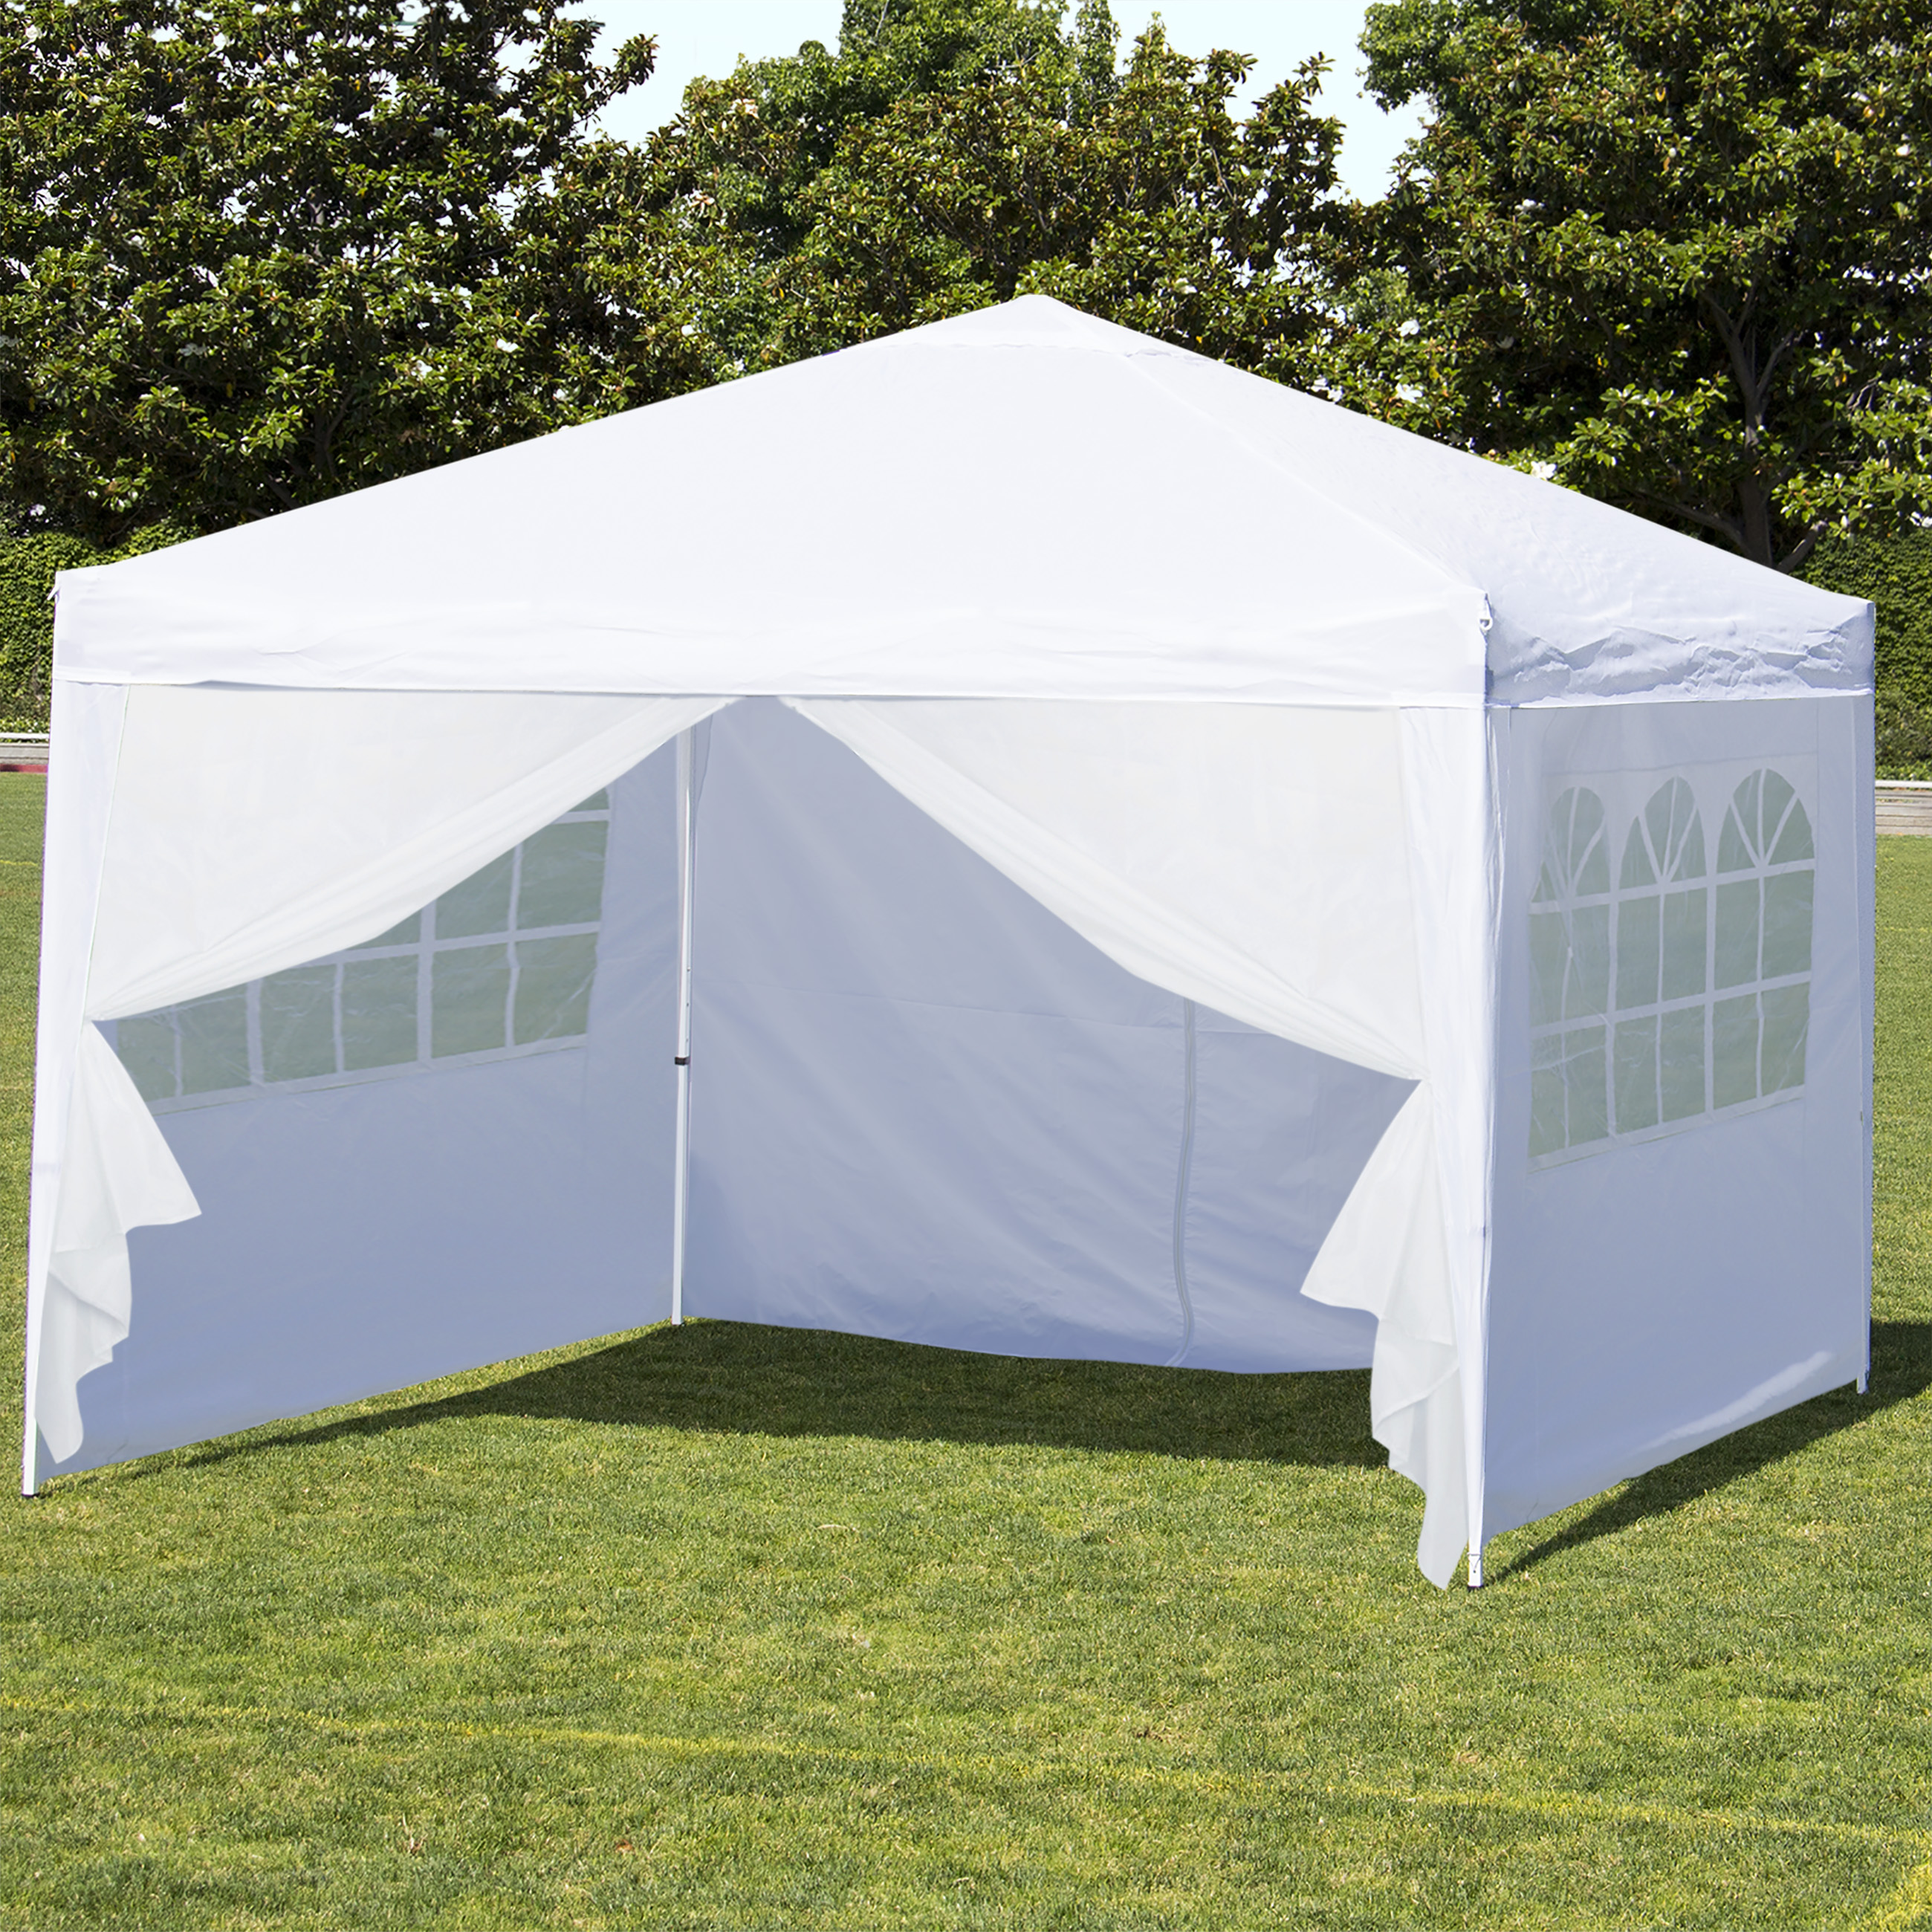 Best Choice Products 10x10ft Portable Lightweight Pop Up Canopy Tent w  Side Walls and Carrying Bag White Silver by Best Choice Products